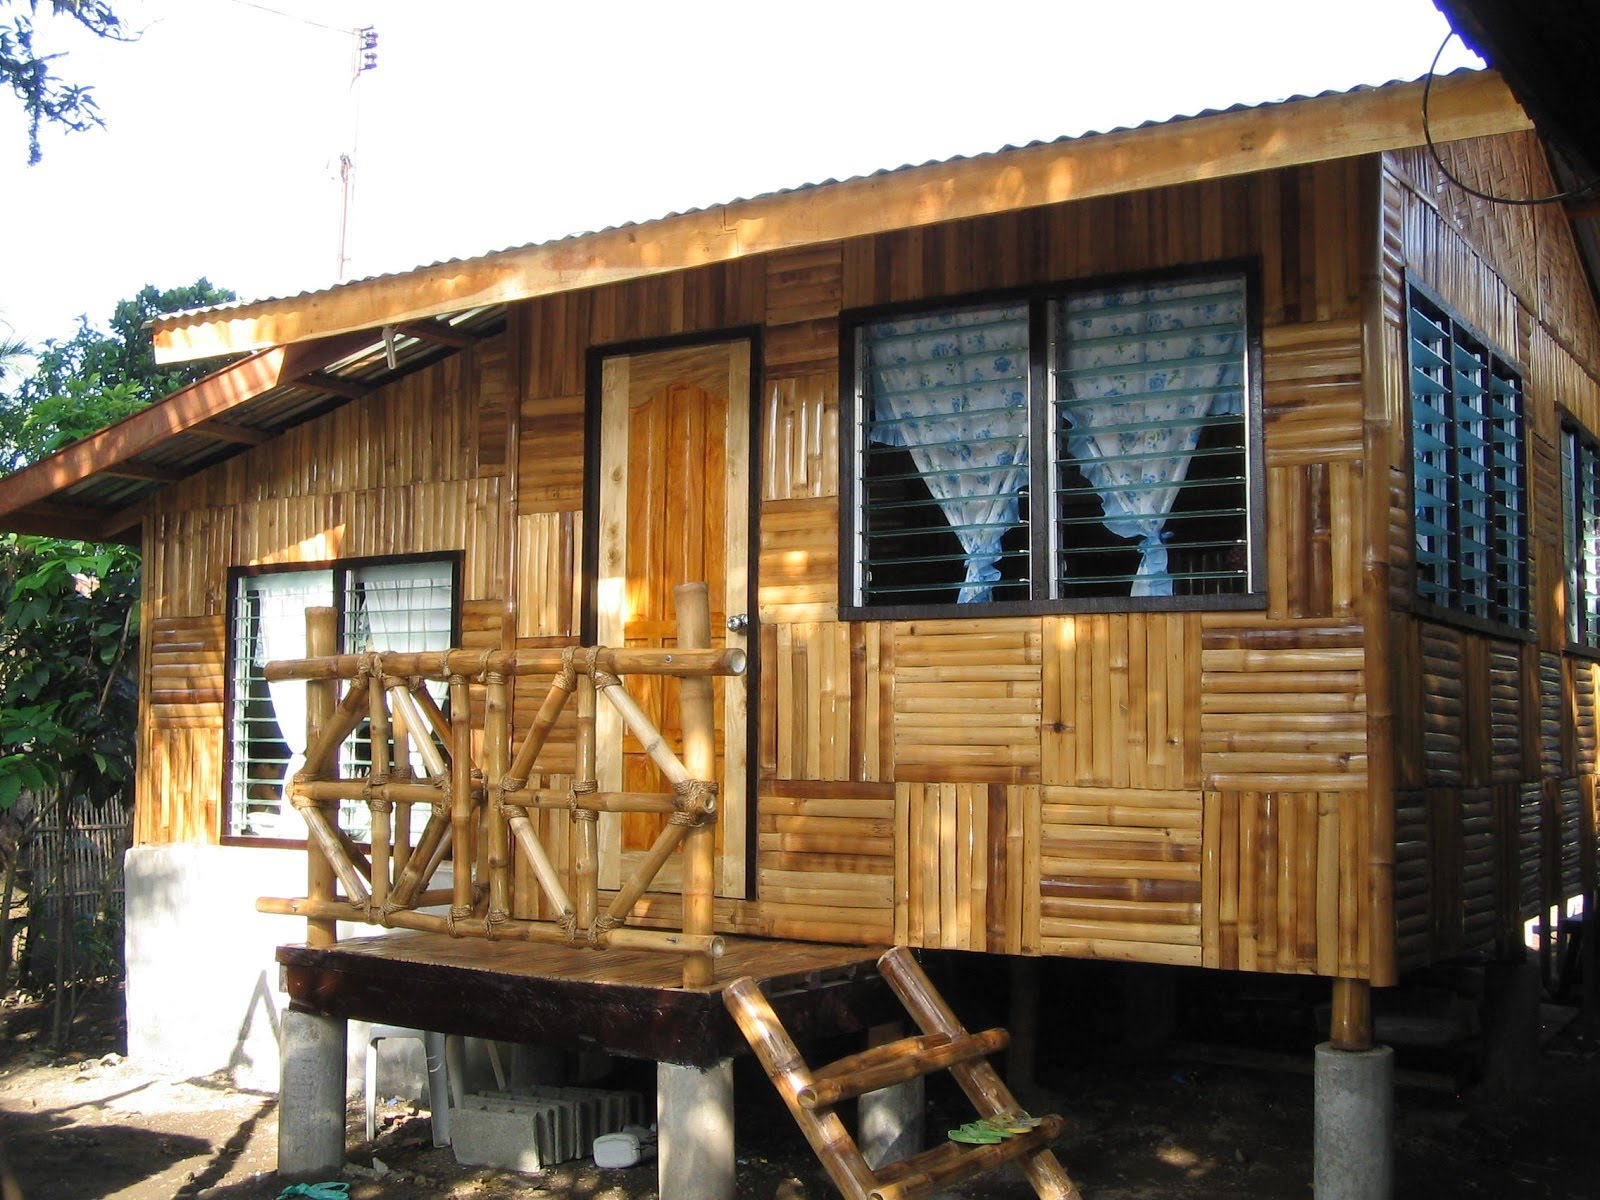 maxresdefault - 38+ Small Native House Design Philippines  Gif